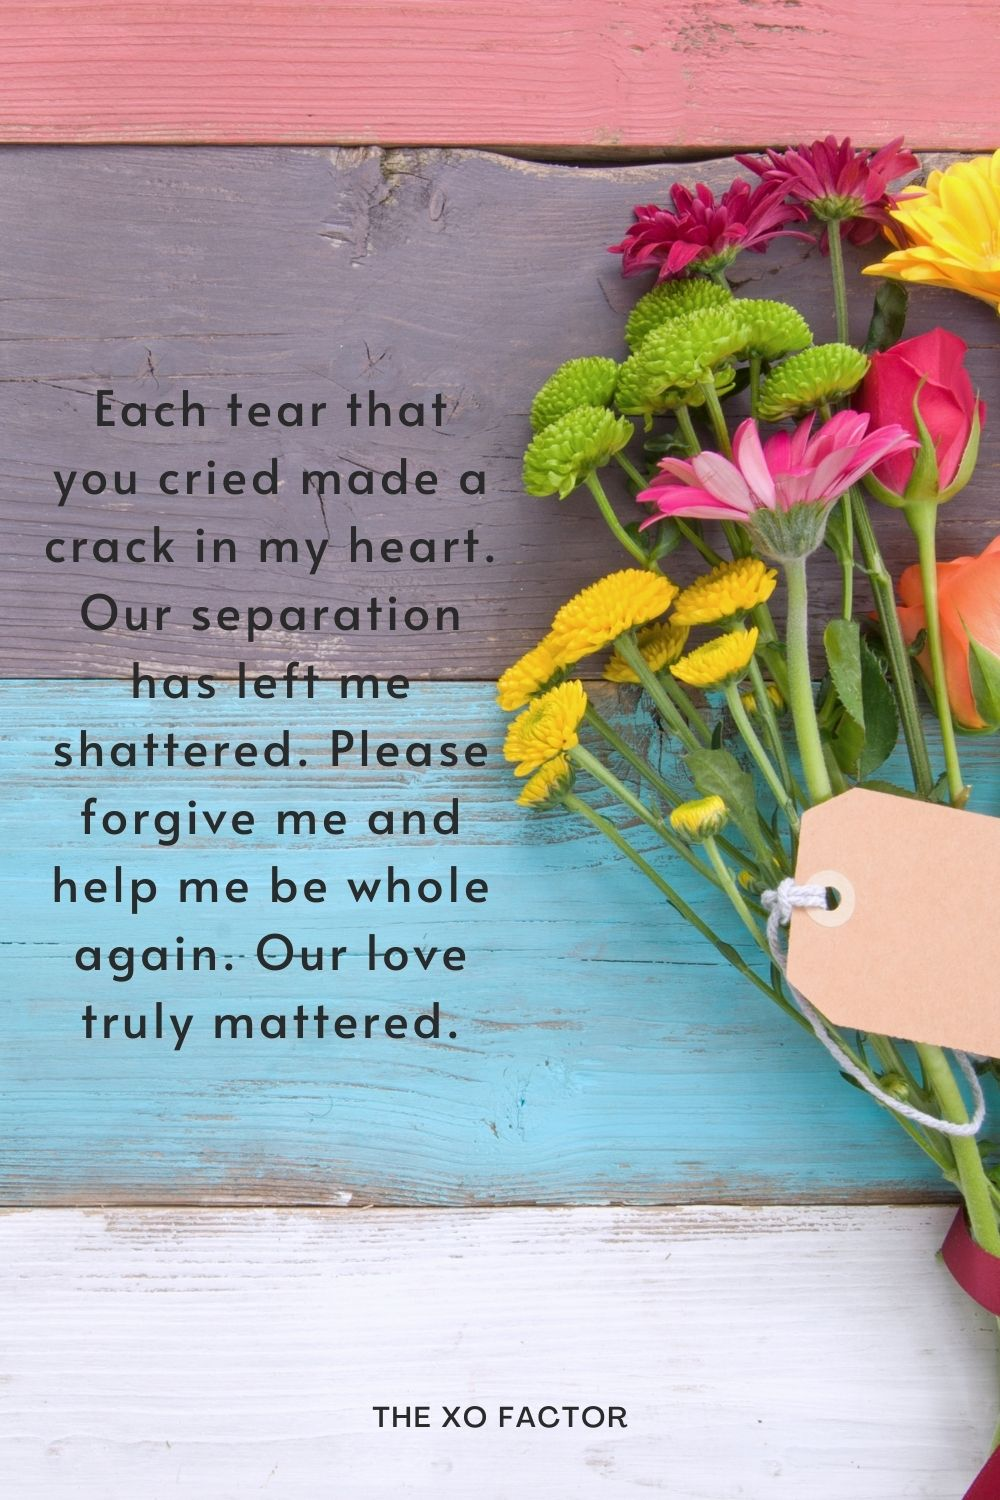 Each tear that you cried made a crack in my heart. Our separation has left me shattered. Please forgive me and help me be whole again. Our love truly mattered.